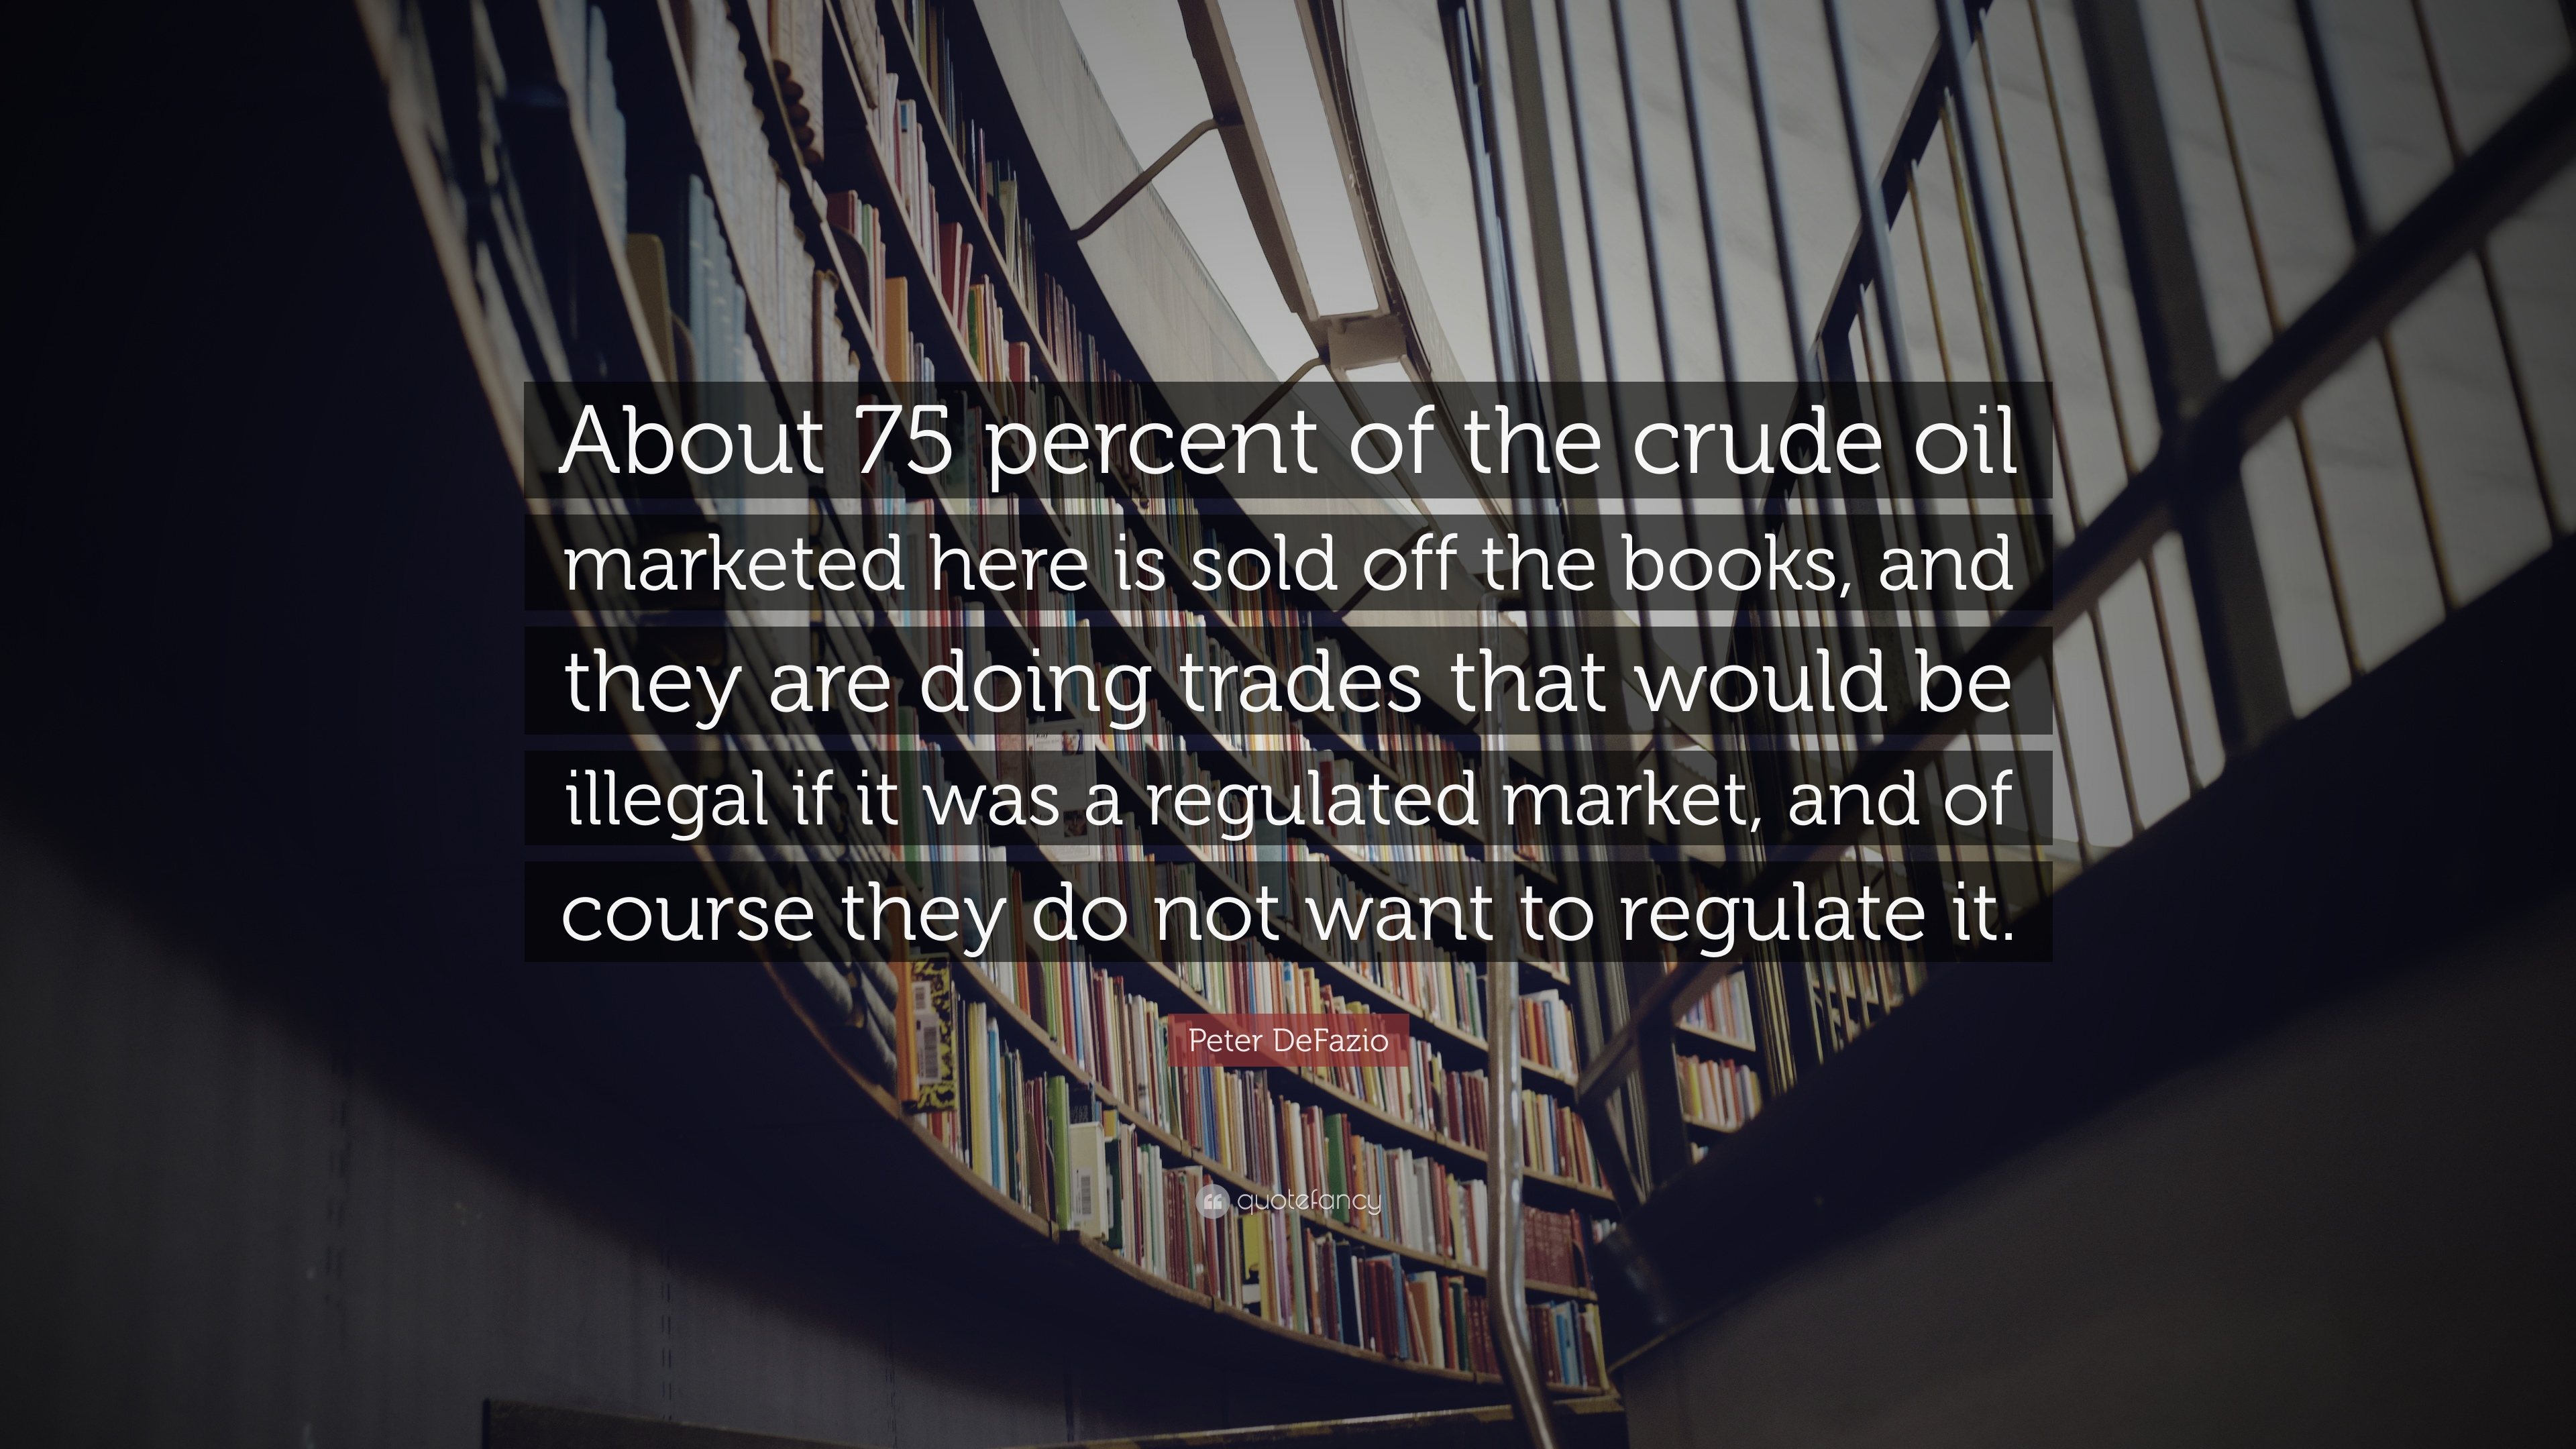 Crude oil quote quotes of the day crude oil quote peter defazio quote about 75 percent of the crude oil marketed buycottarizona Choice Image